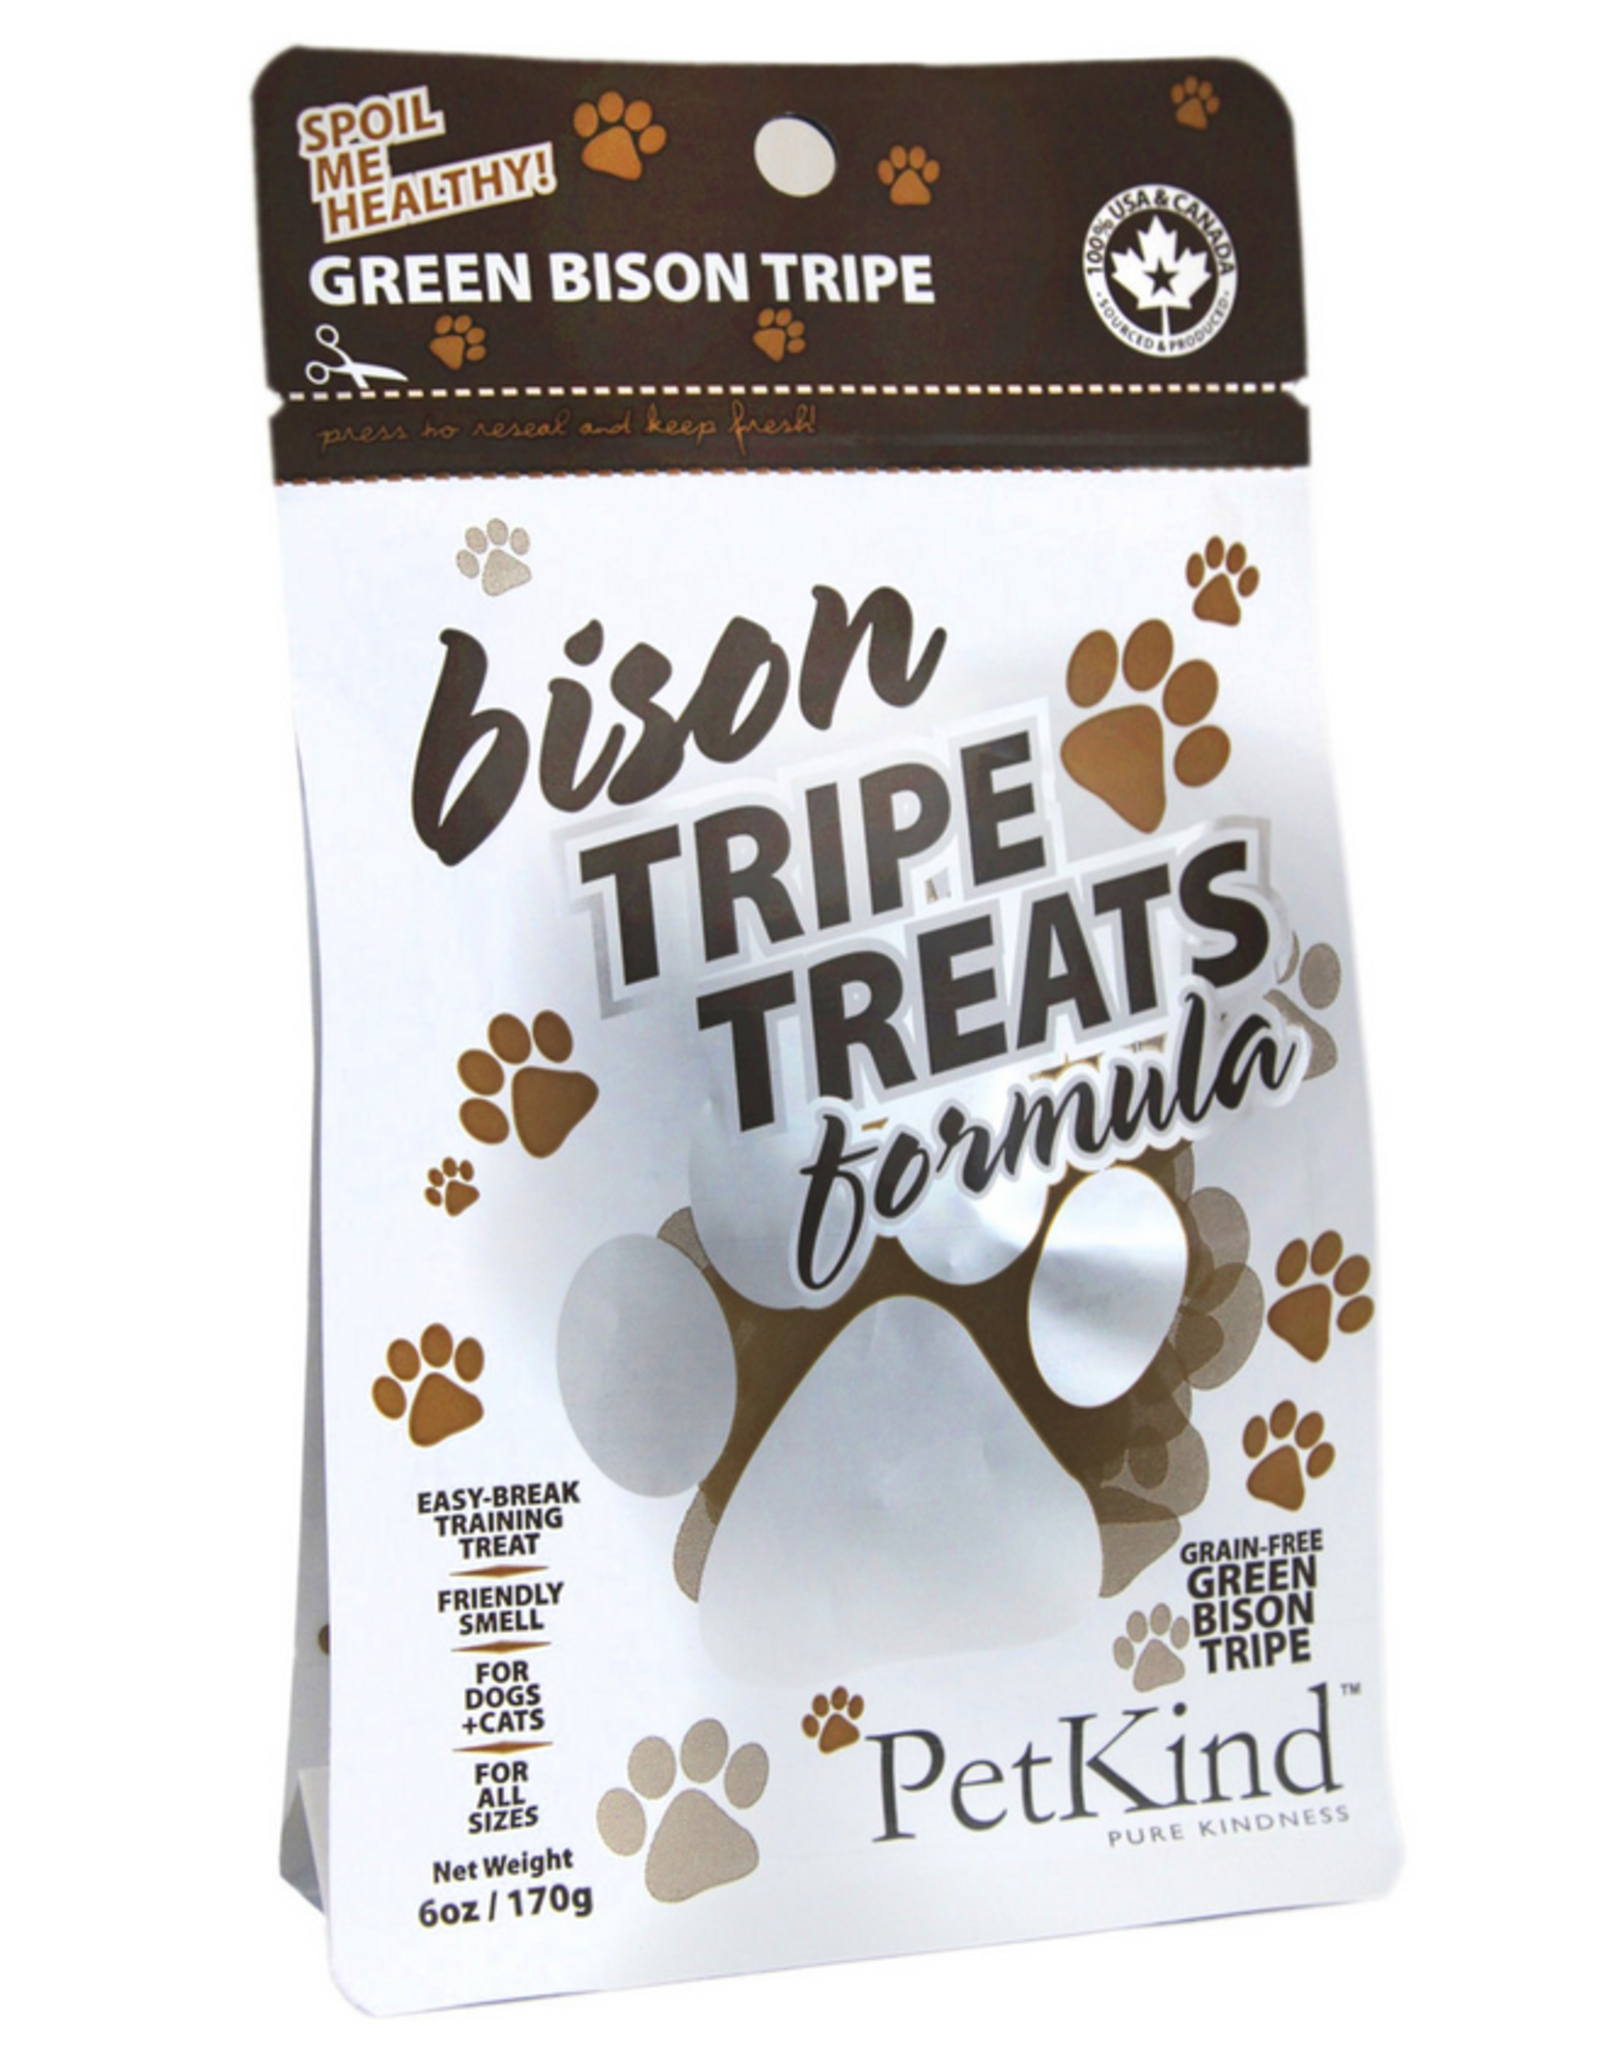 PetKind Petkind - Tripe Treat - Bison - 6oz